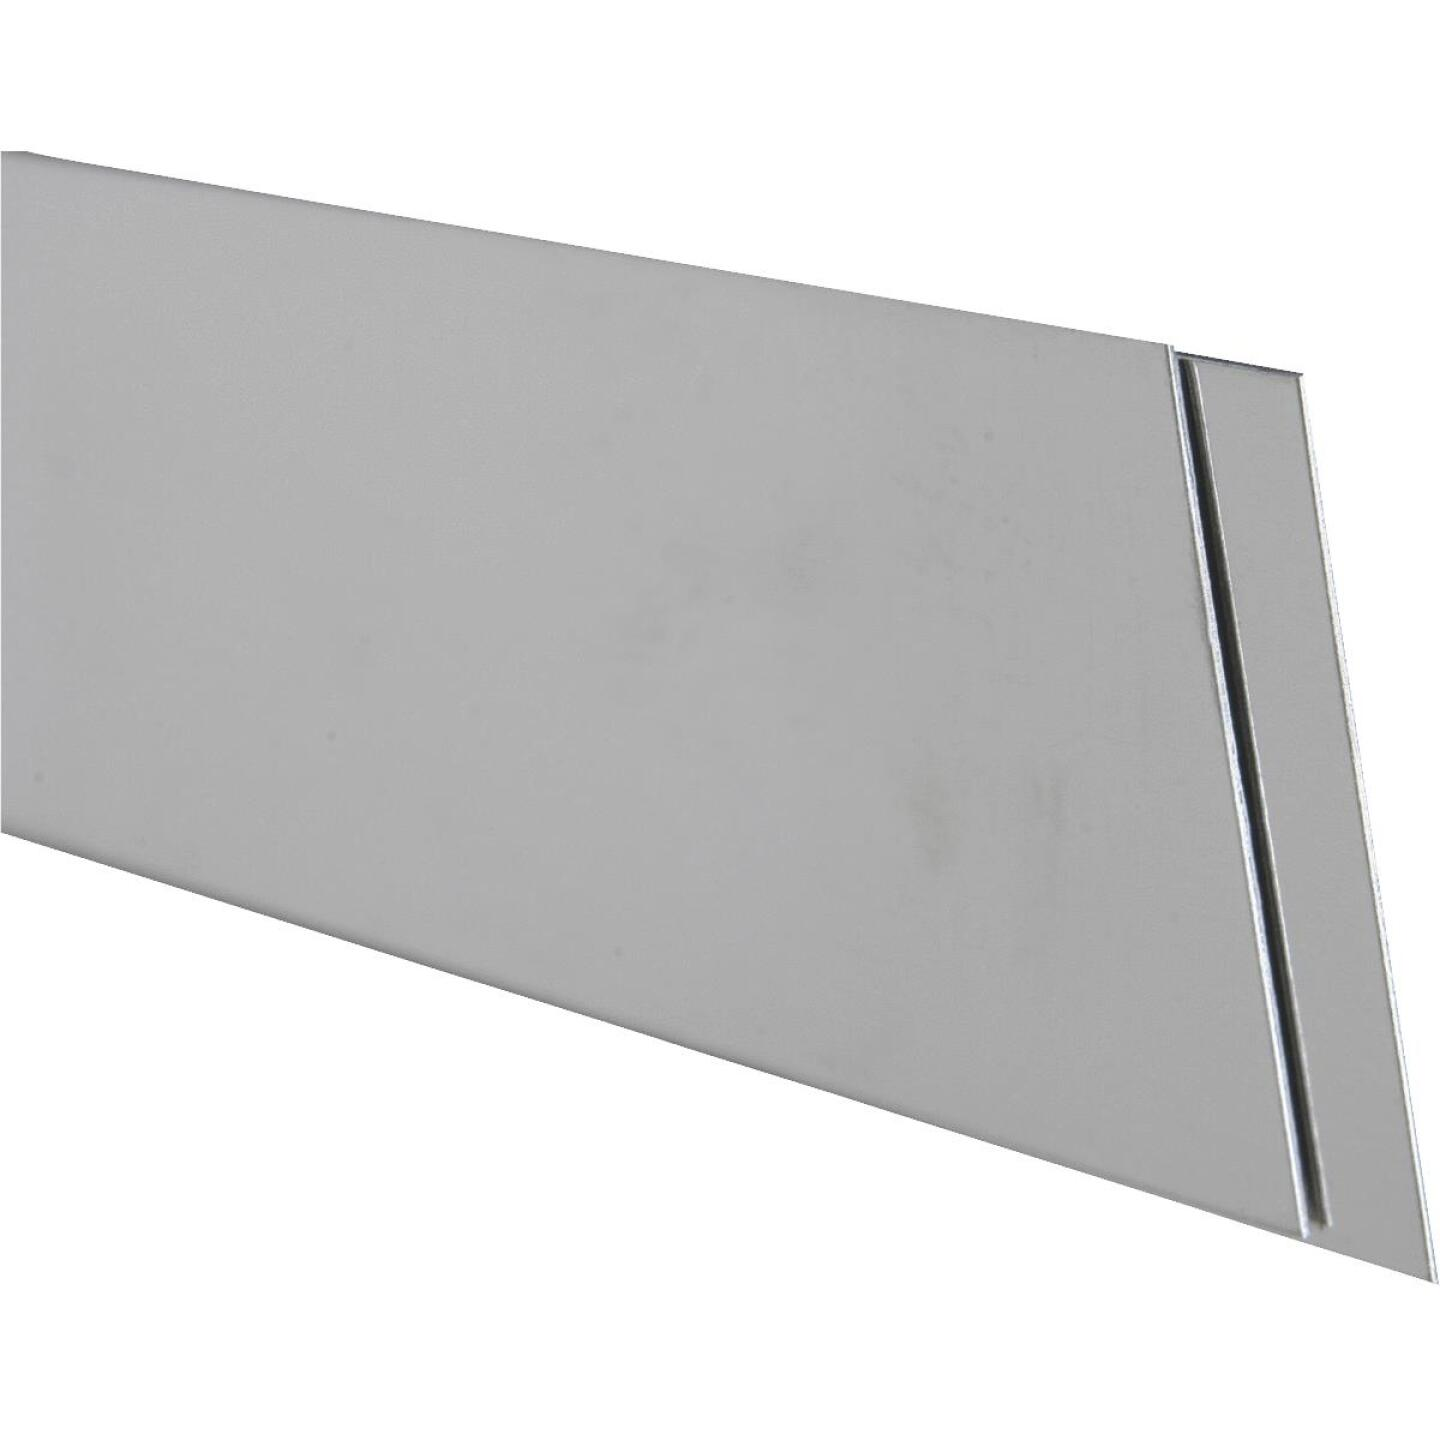 K&S Stainless Steel 1/2 In. x 12 In. Strip Stock Image 1